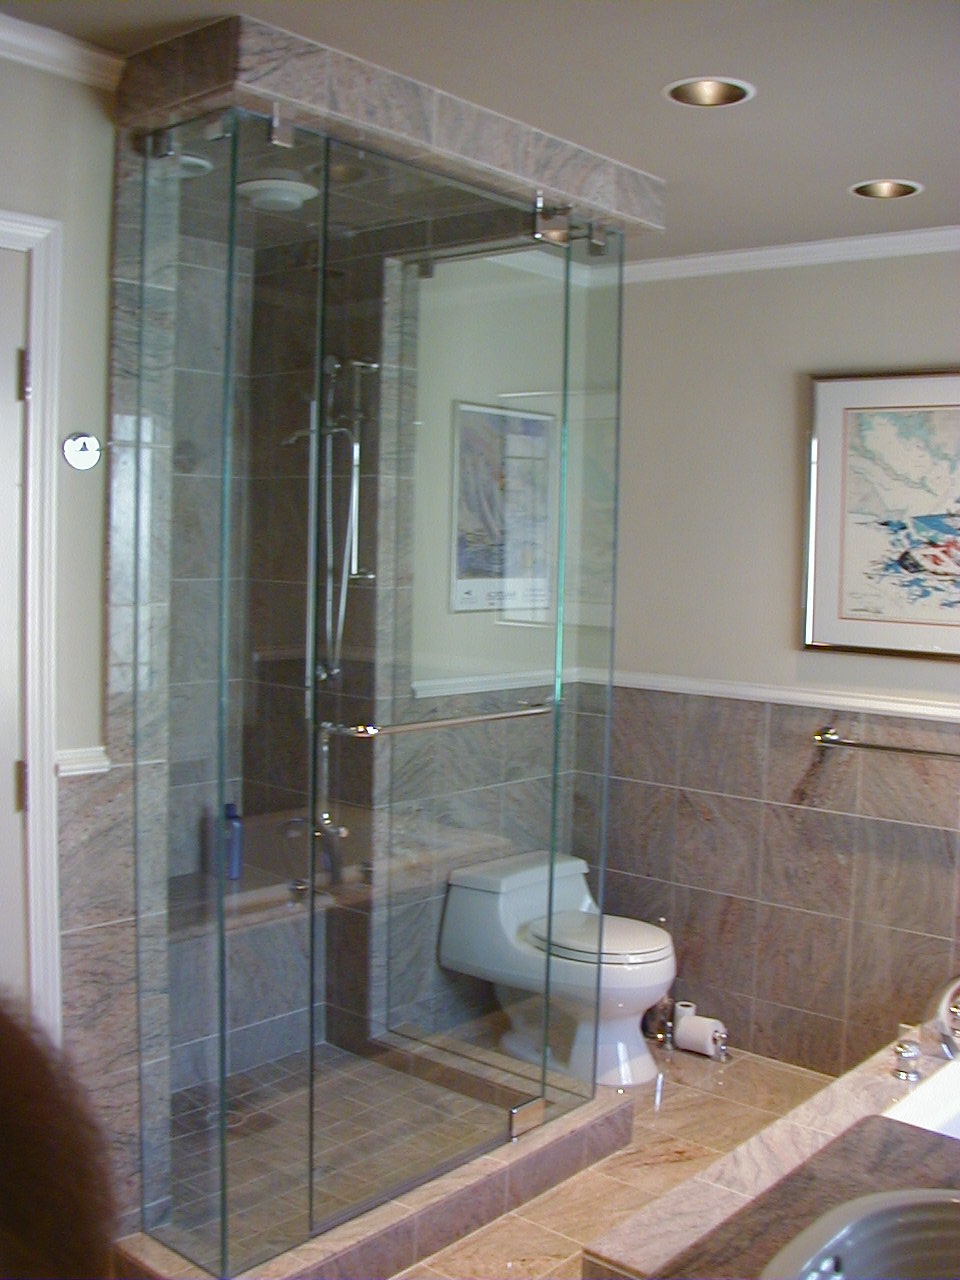 Gallery - Category: Steam Showers - Image: Steam Showers 17